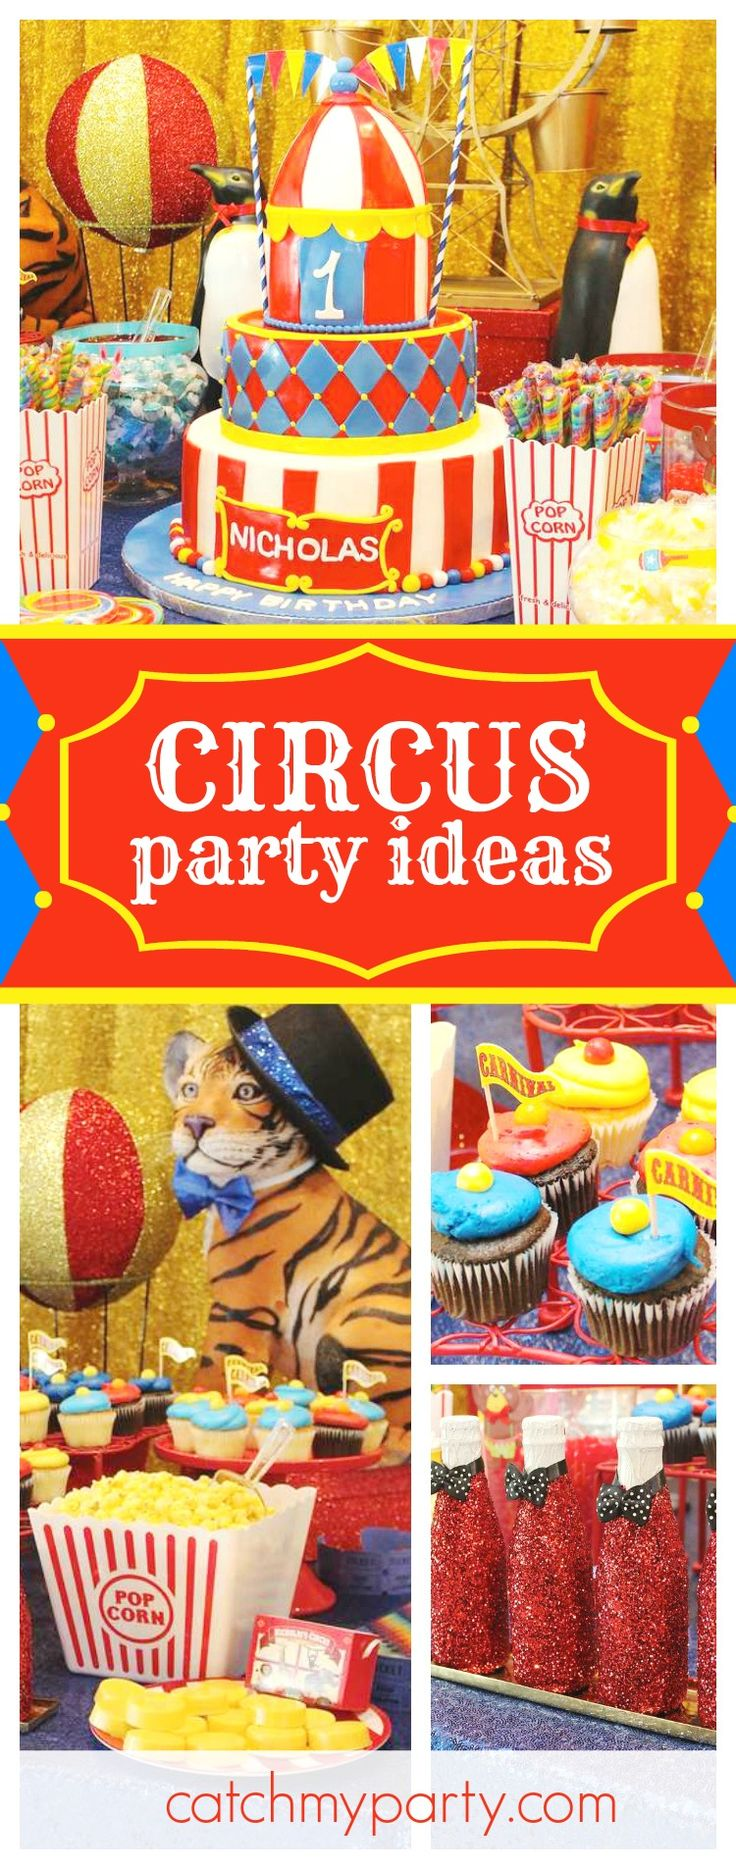 Join in the fun at this amazing Circus birthday party! The dessert table is awesome!! See more party ideas and share yours at CatchMyParty.com